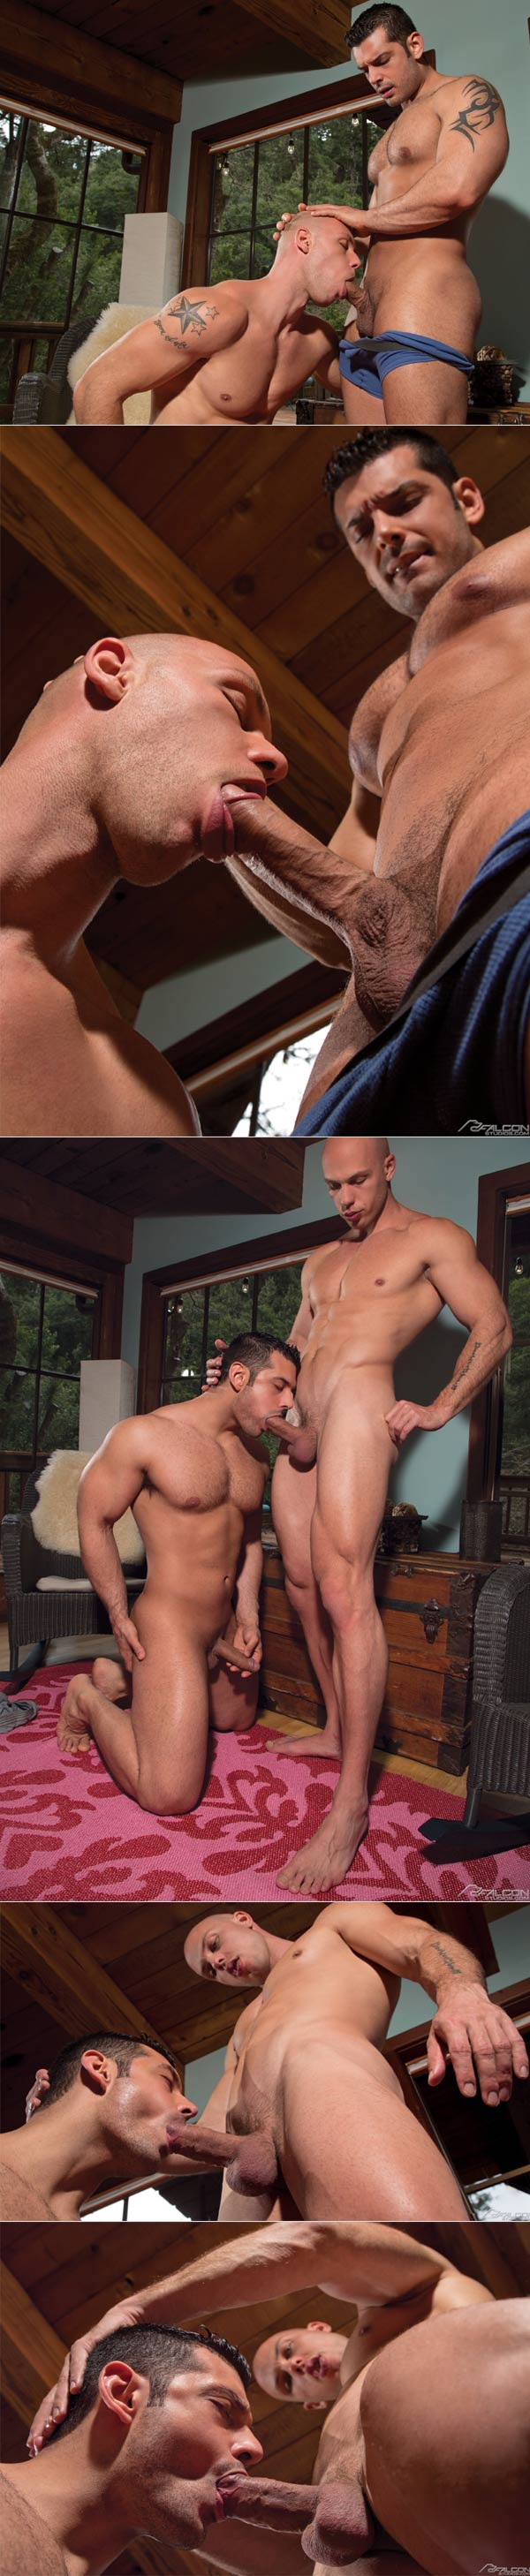 Buck Naked (Marcus Ruhl & Angelo) at FalconStudios